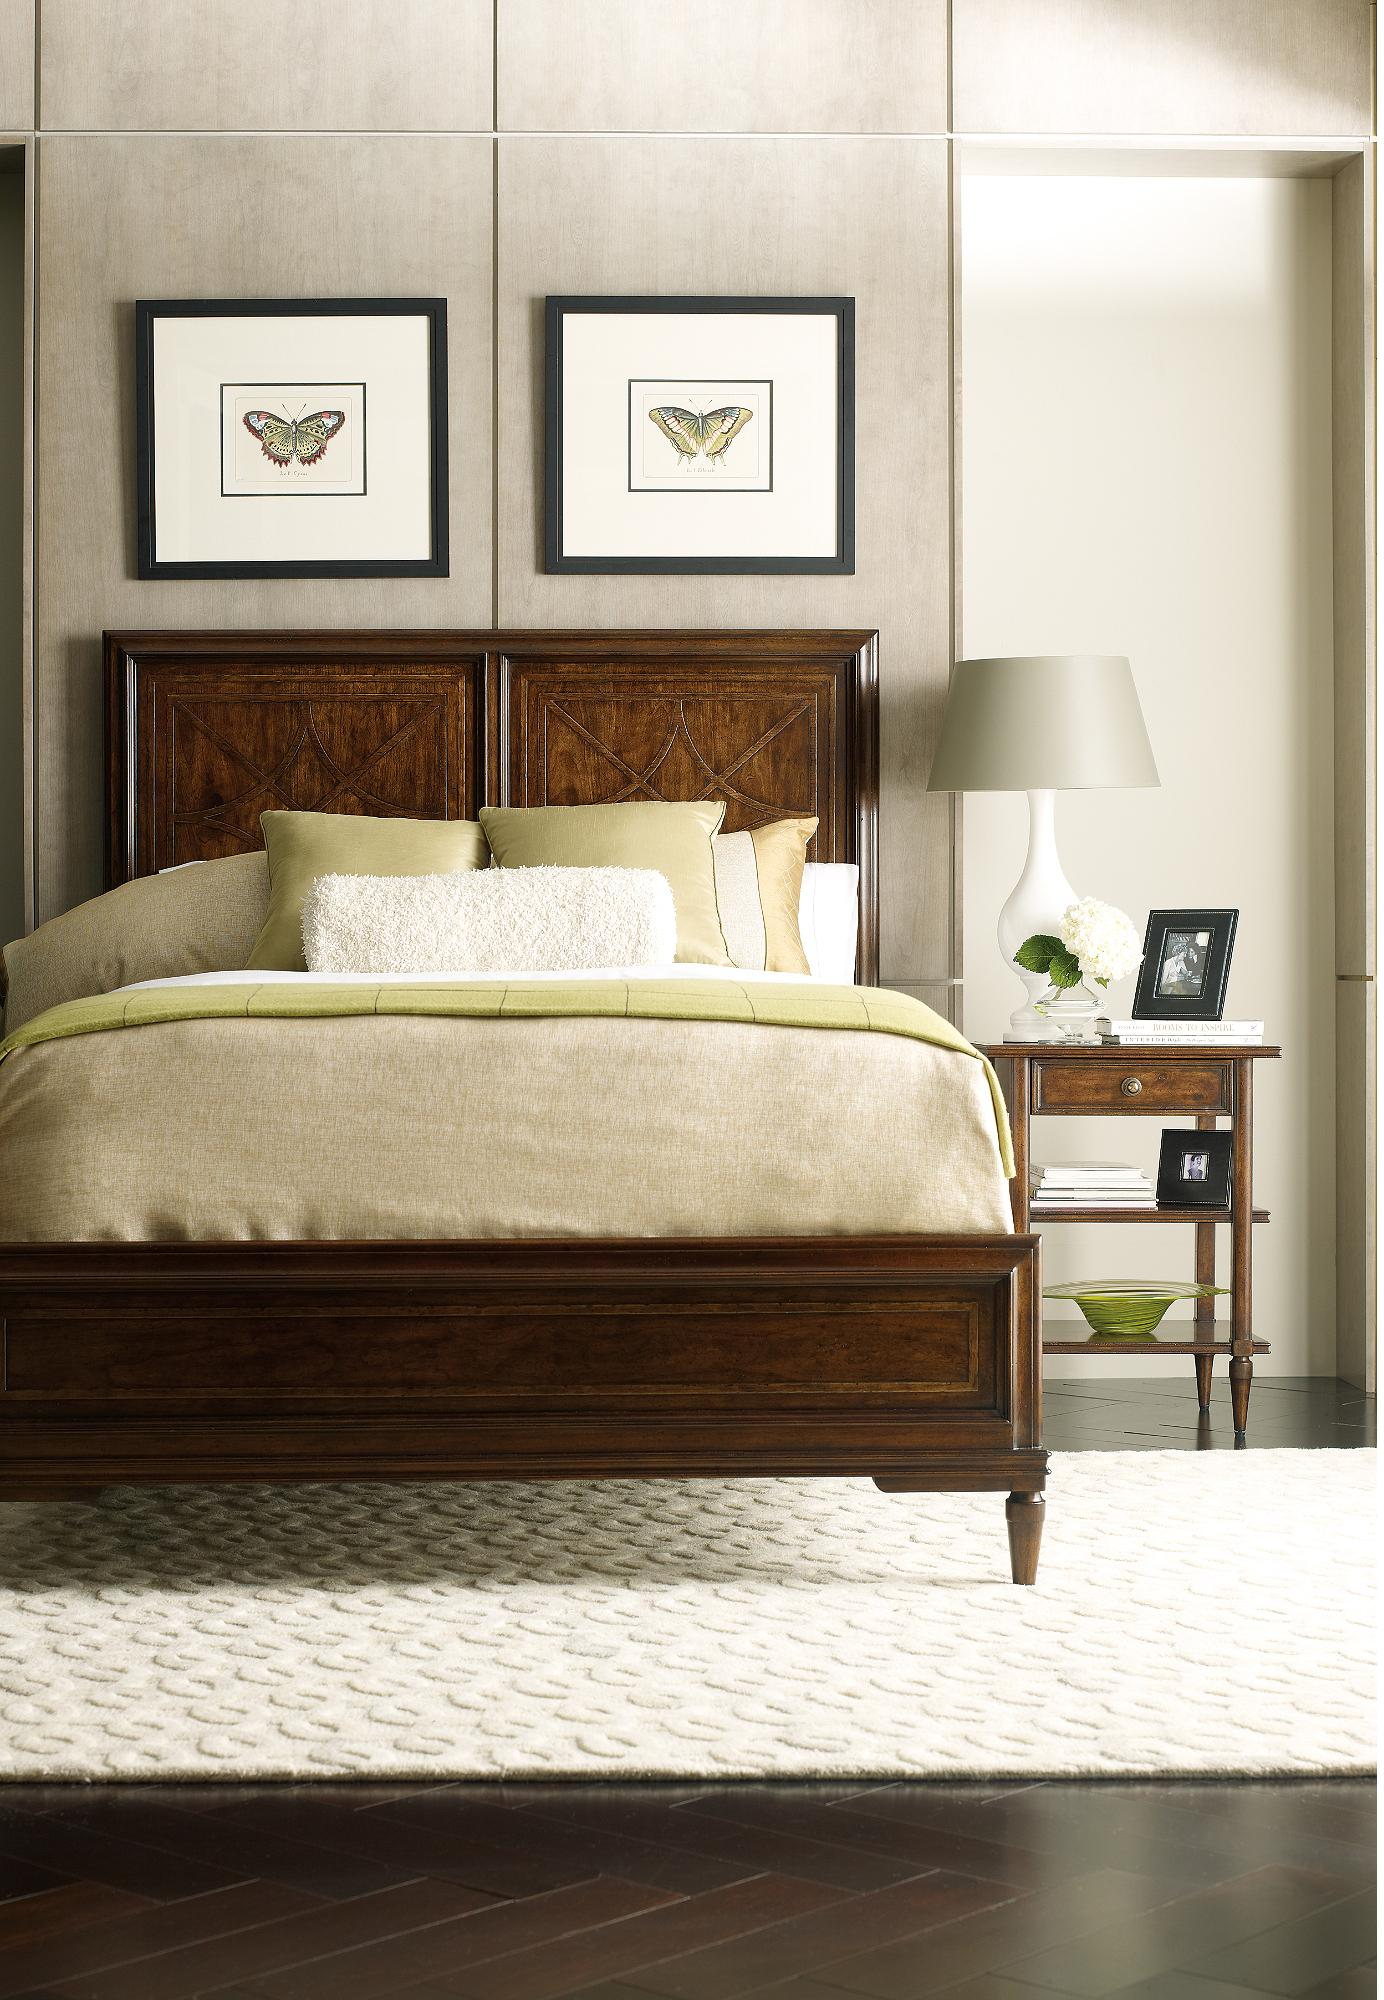 Stanley Furniture The Classic Portfolio - Vintage Queen Bedroom Group - Item Number: 264 Q Bedroom Group 2